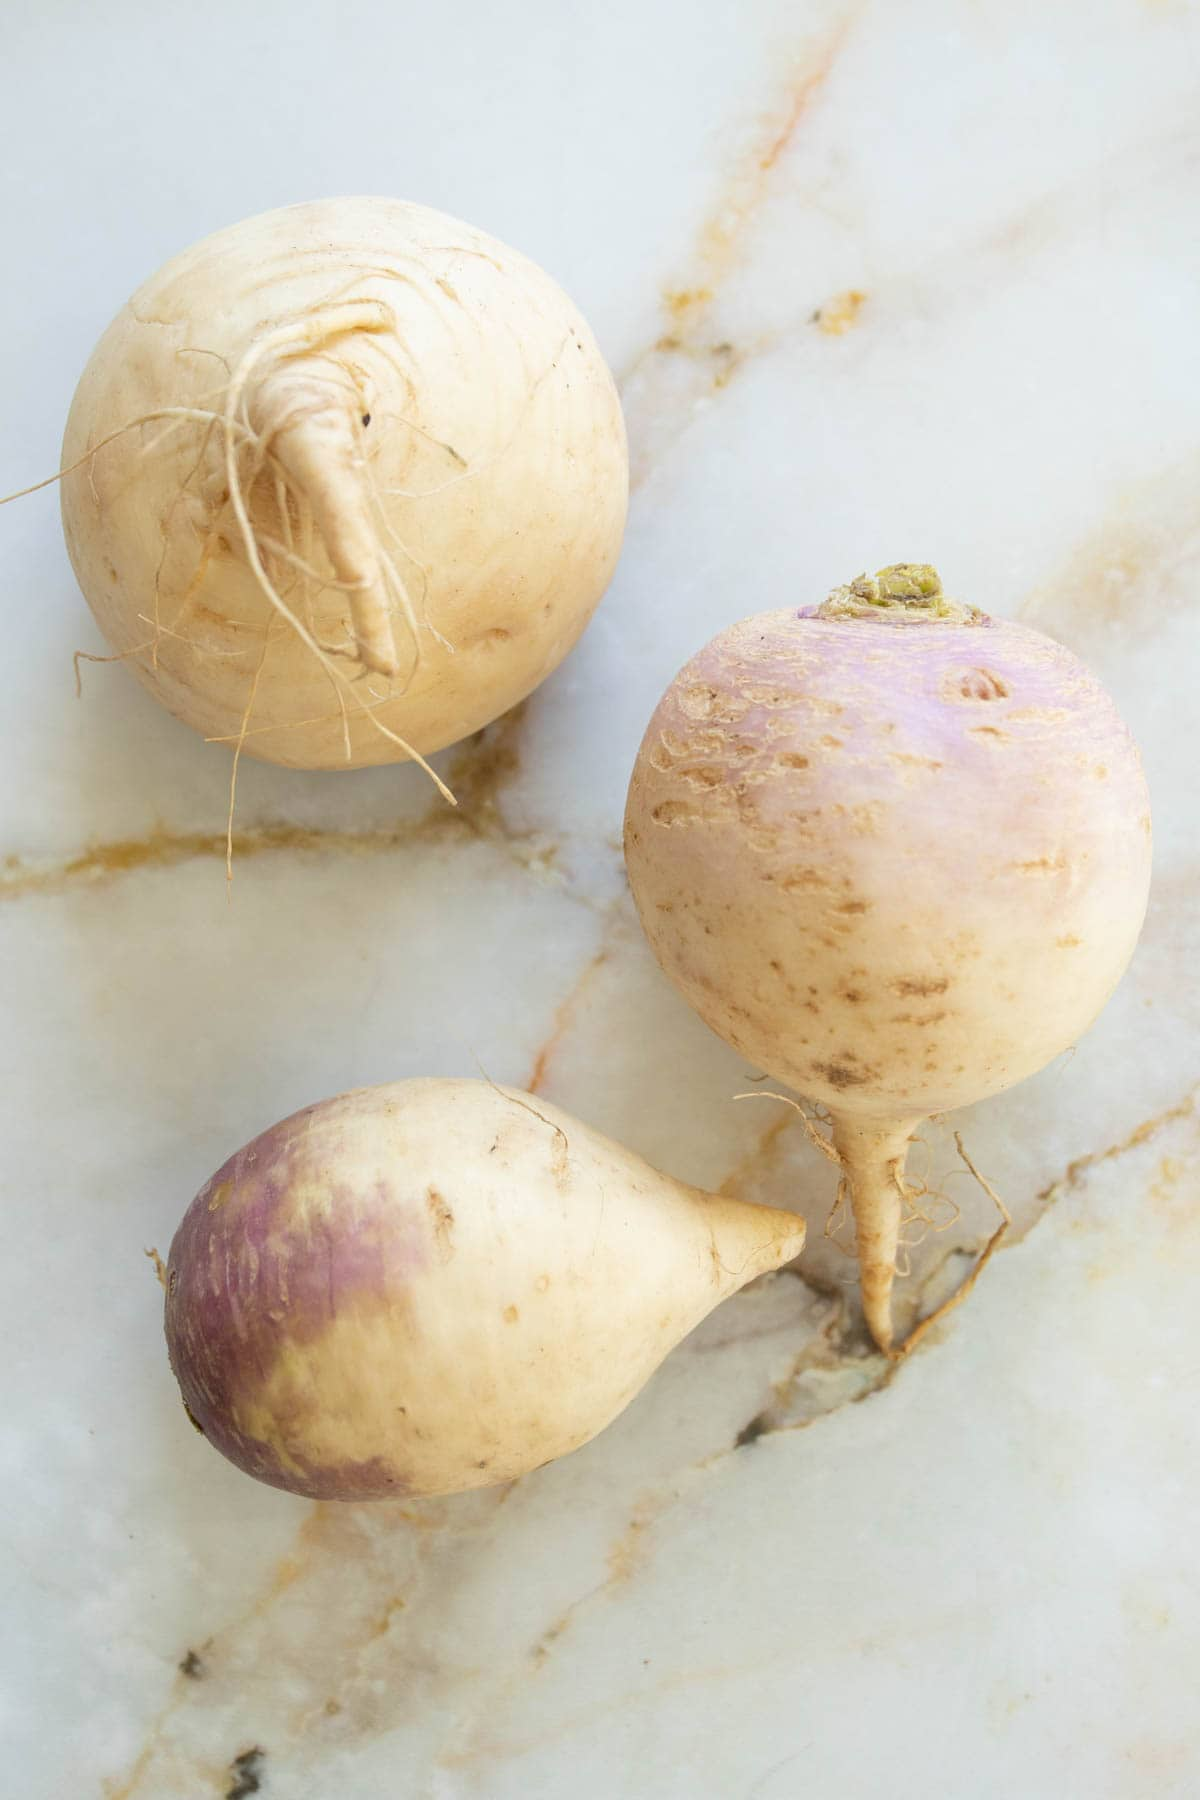 whole turnips on the counter